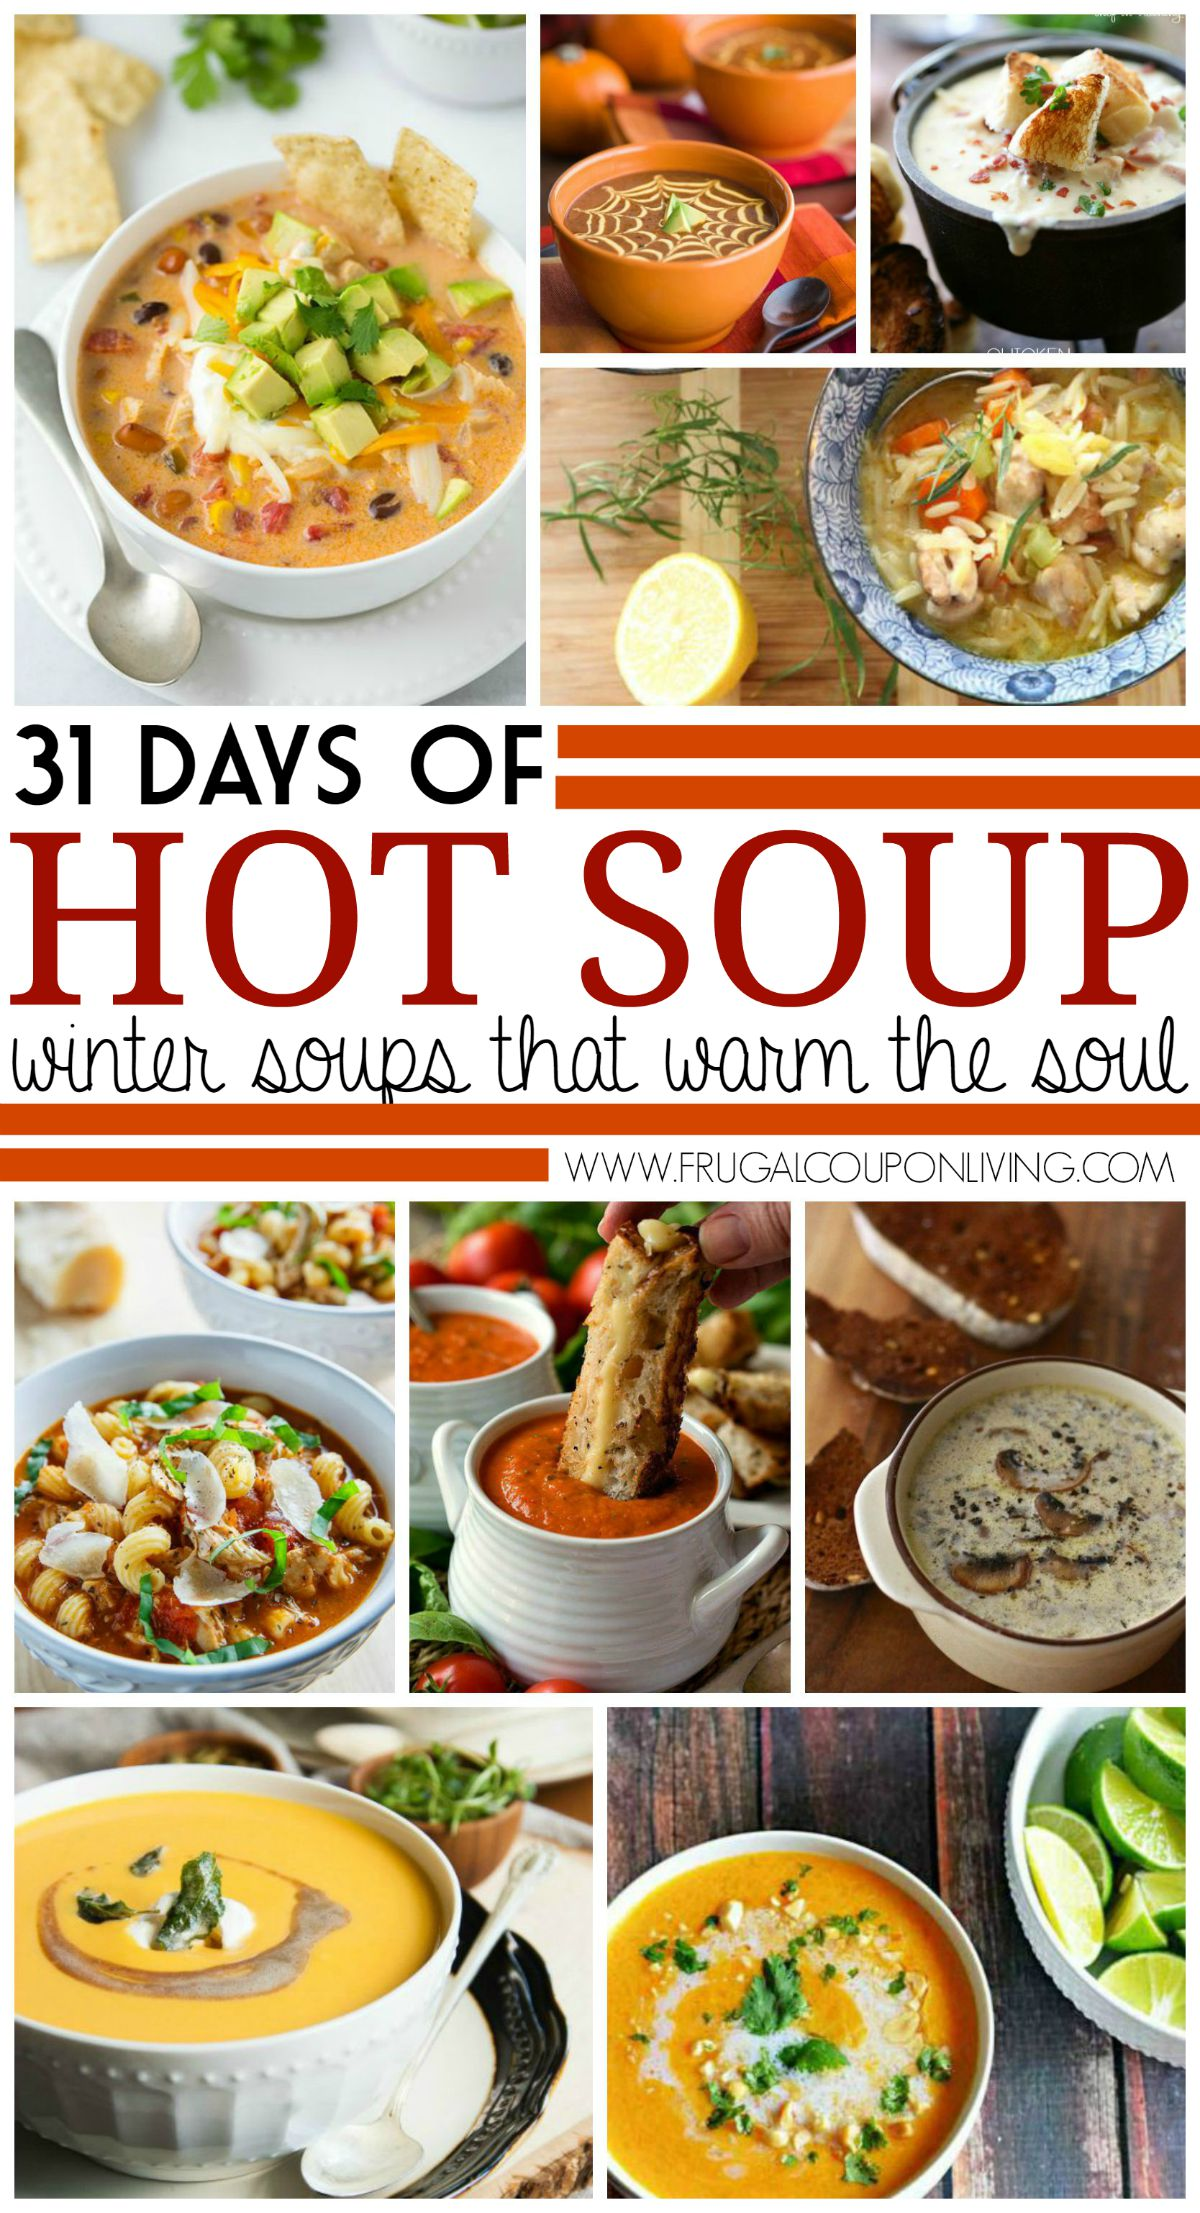 31-Days-of-Winter-Soup-Frugal-Coupon-Living